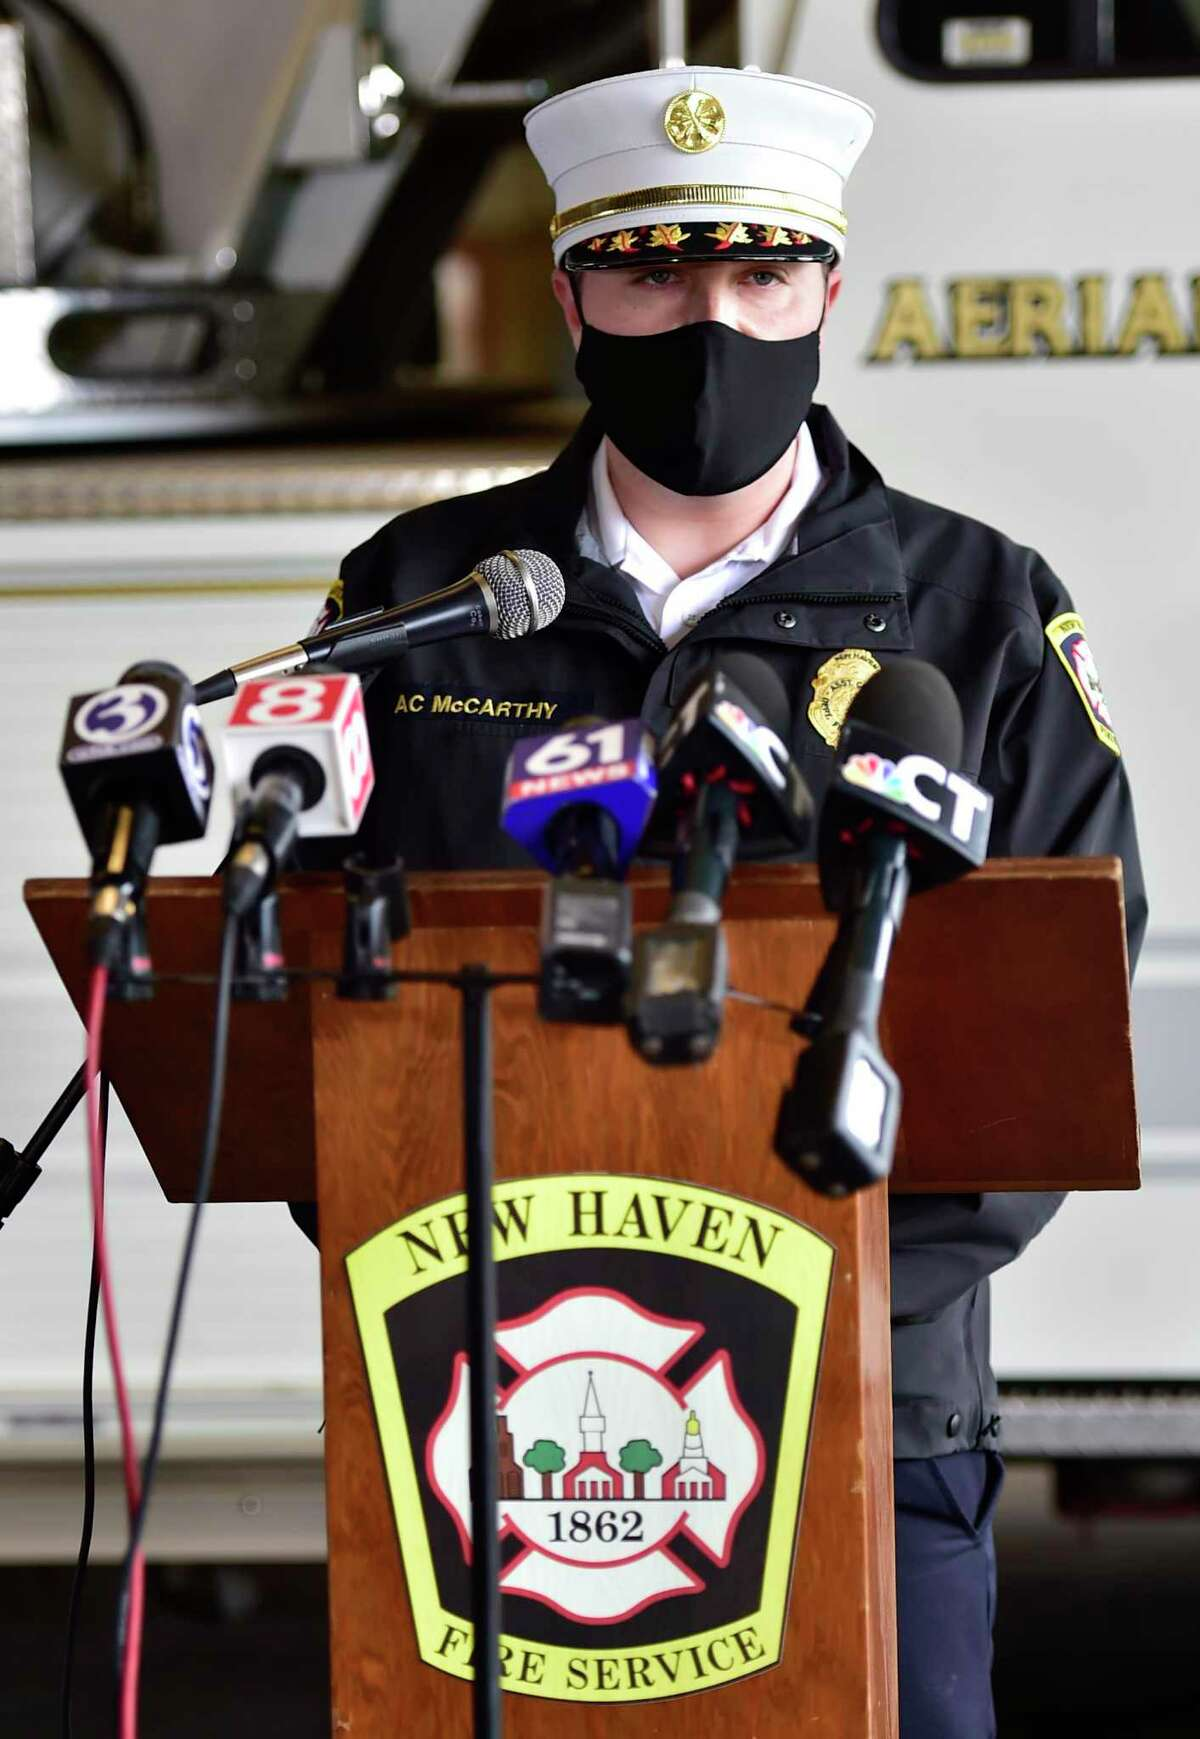 Justin McCarthy, New Haven assistant fire chief for operations, shares an update during a press conference at New Haven fire headquarters on the investigation into a Wednesday fire that left one firefighter dead and another in critical condition.